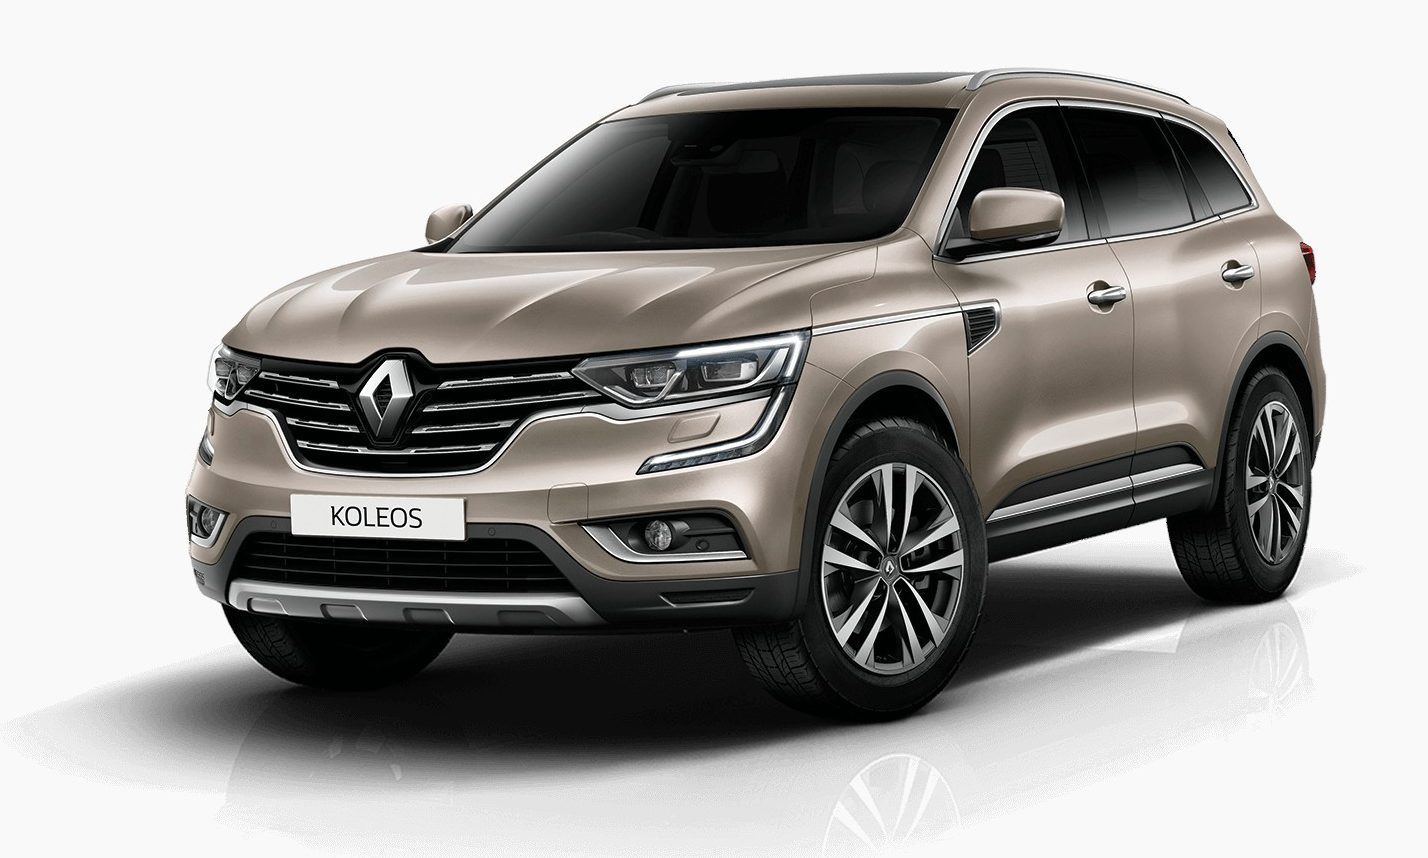 2018 Renault Koleos PE Car : 2018 Renault Koleos Car Price, Engine, Full Technical ...